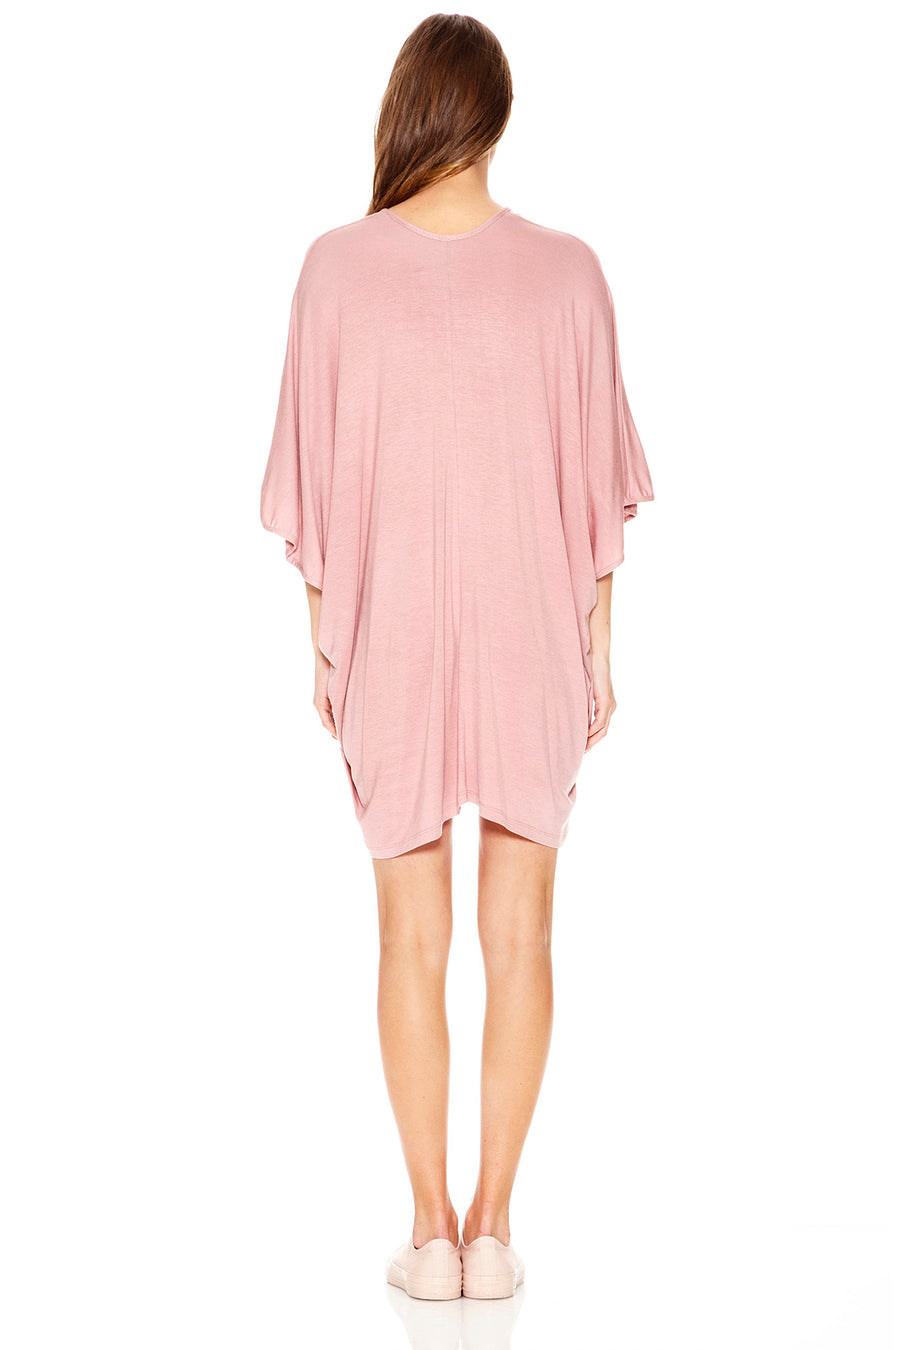 Lola Kaftan Mini - Dusty Rose